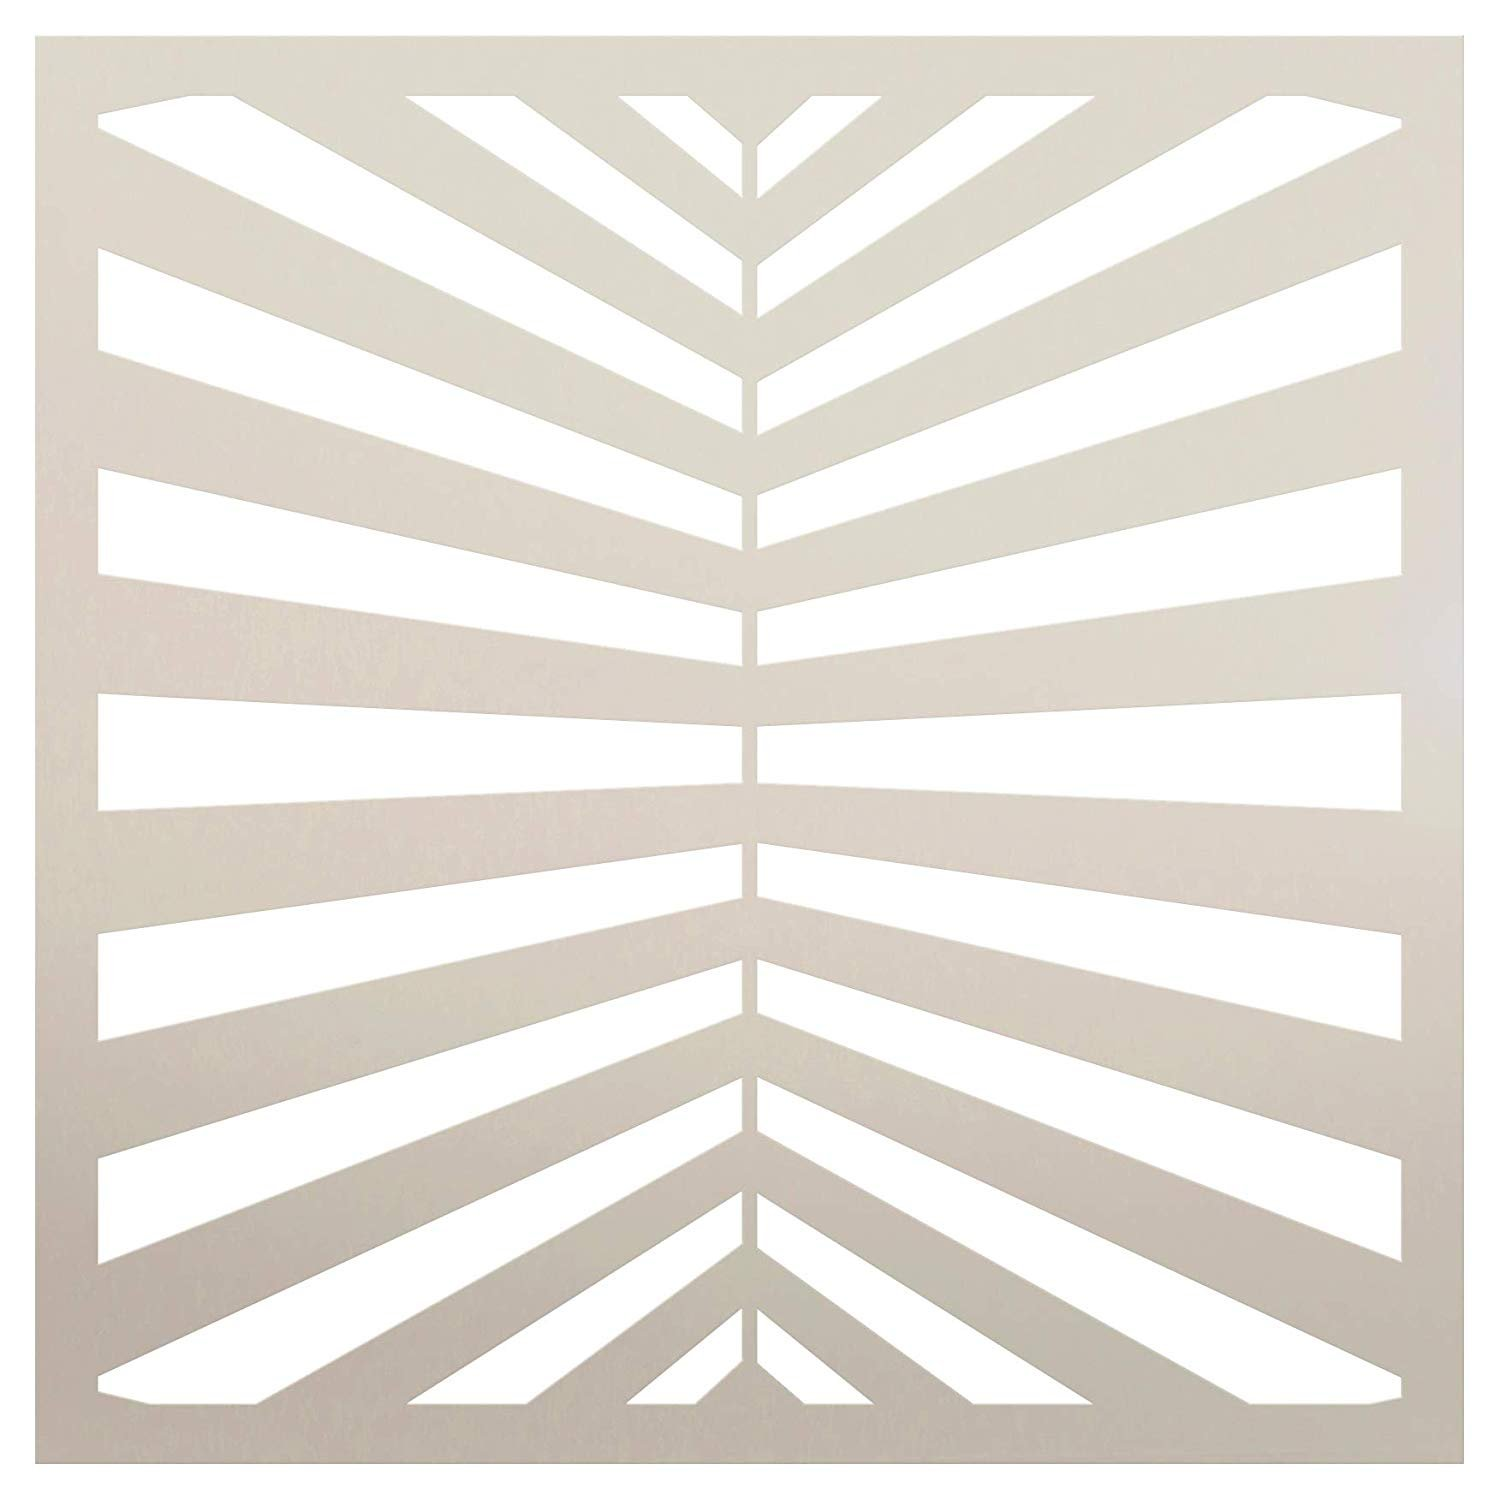 Fun with Stripes Multimedia Perspective Stripe Stencil StudioR12 | Wood Sign | Reusable Mylar Template | Wall Decor | Multi Layering Art Project | Journal Art Deco | DIY Home - Choose Size